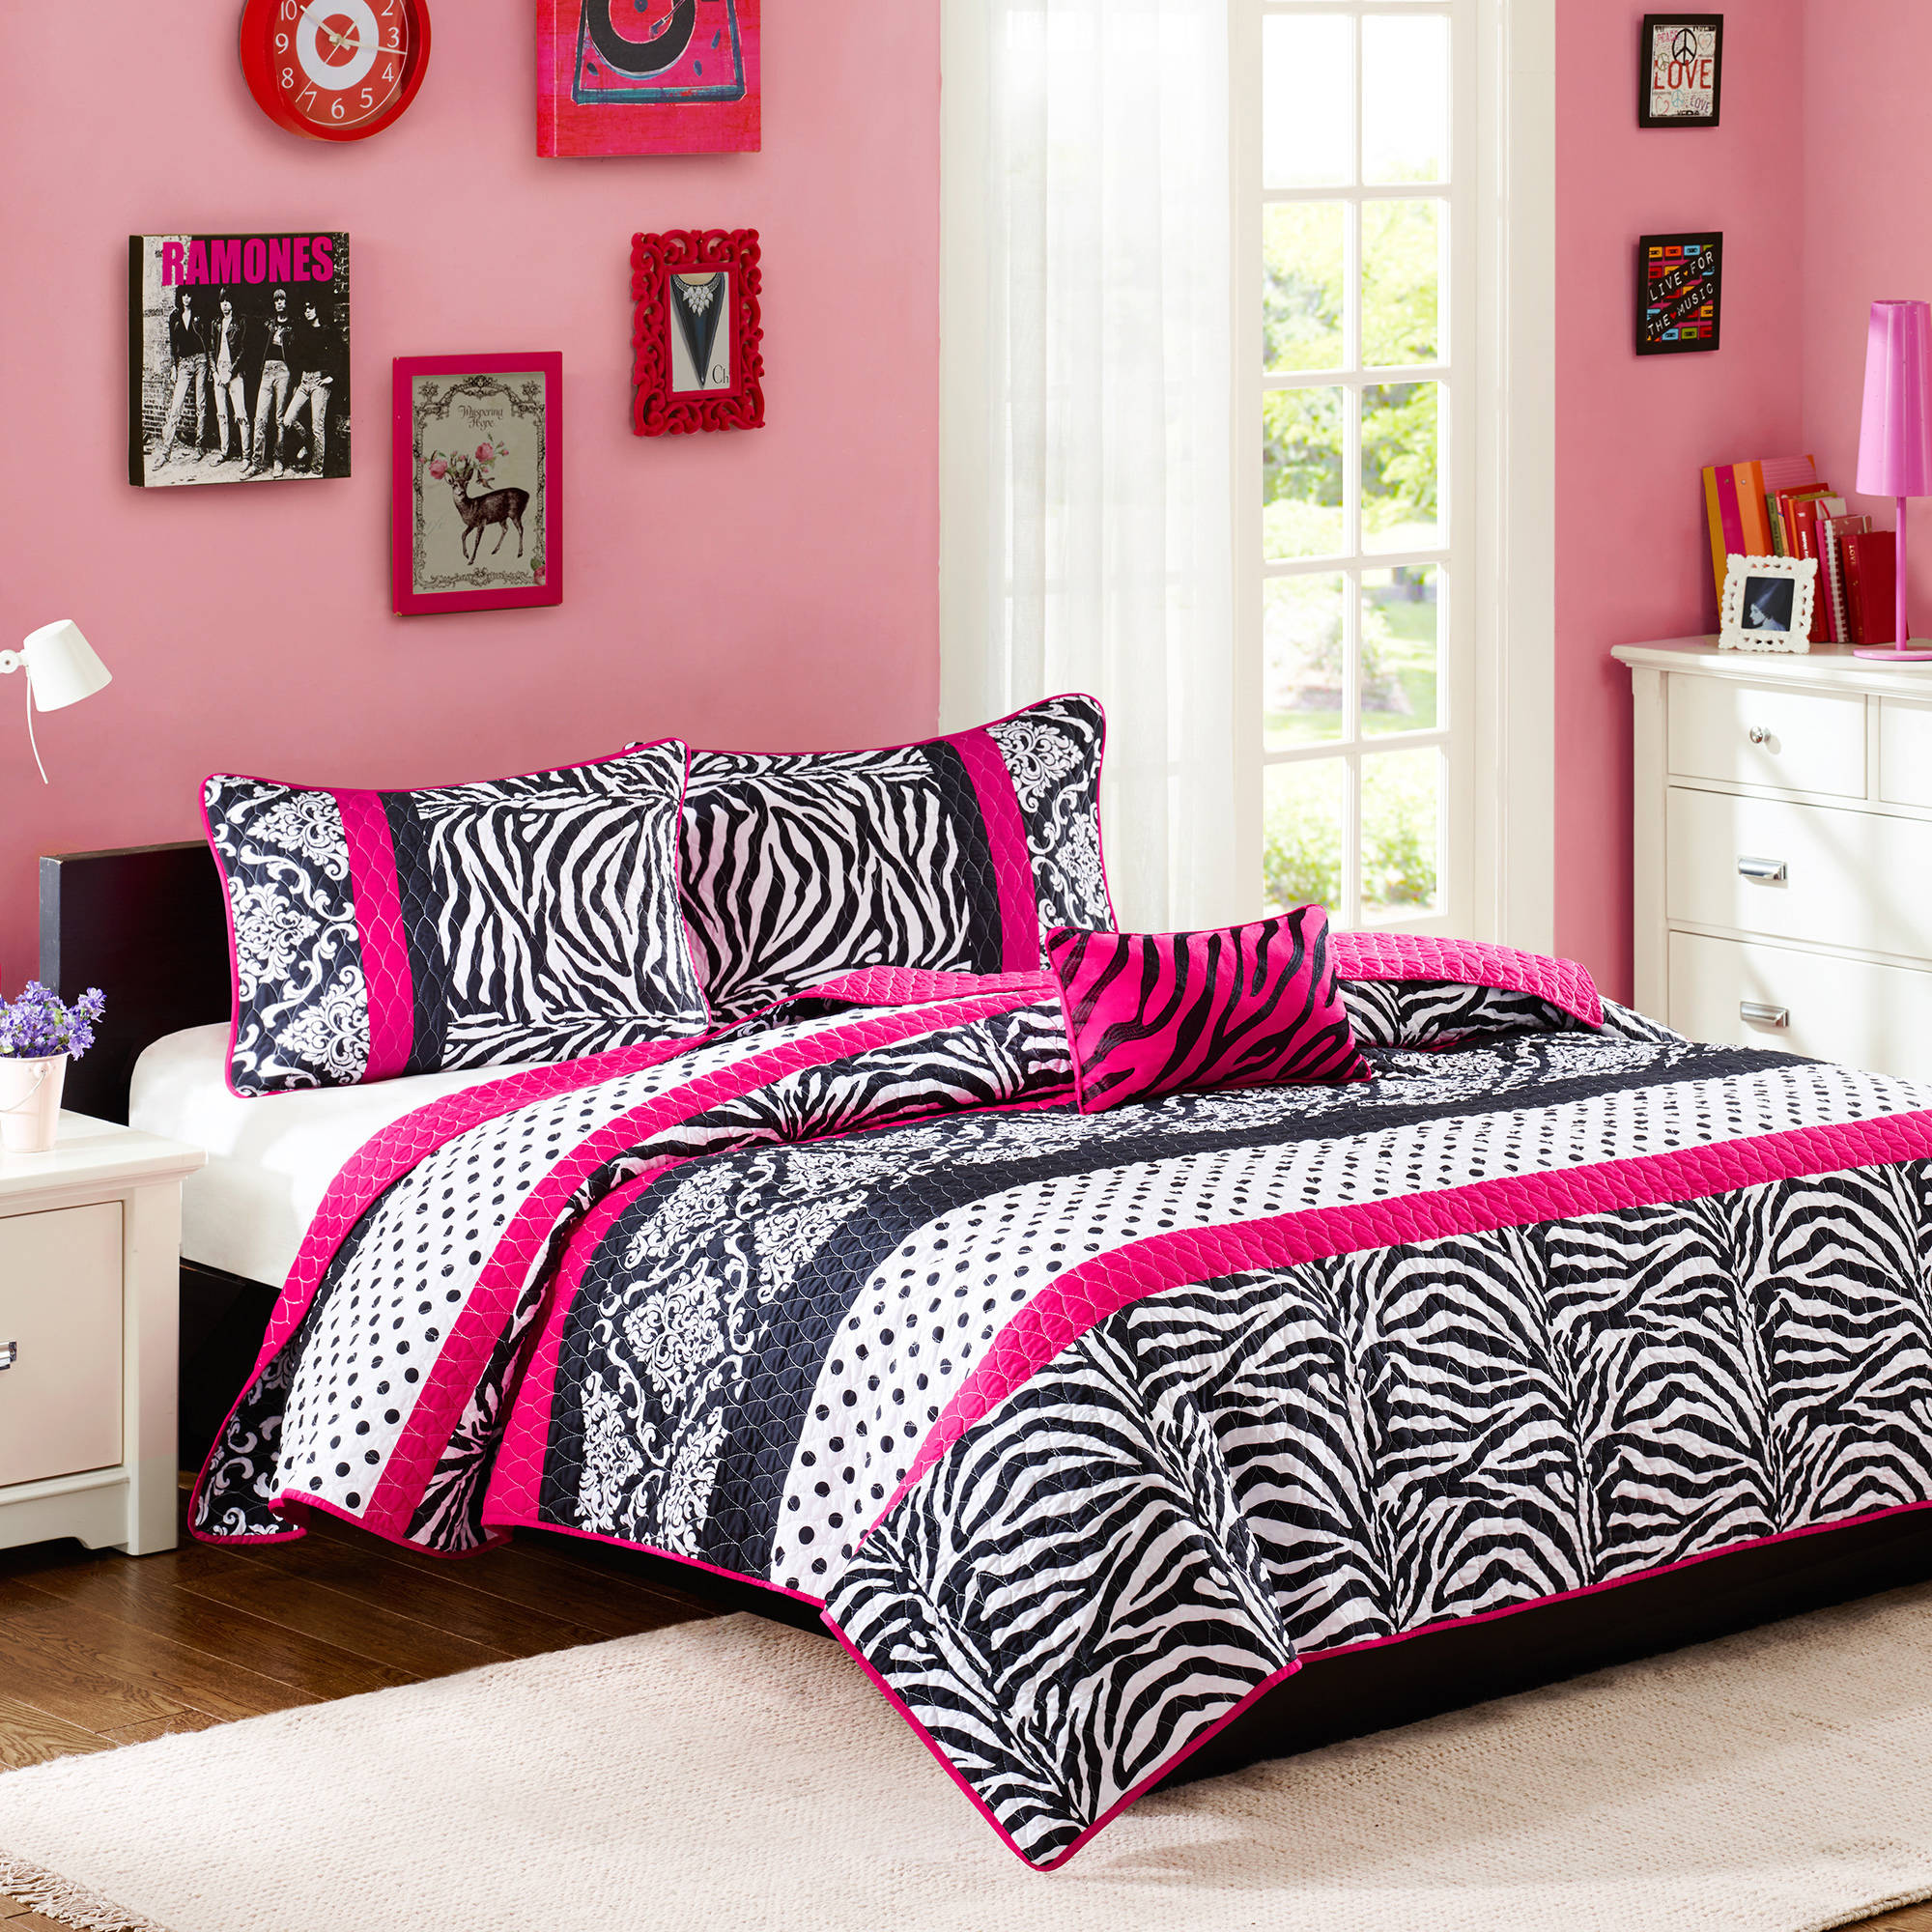 Home Essence Apartment Leona Bedding Coverlet Set